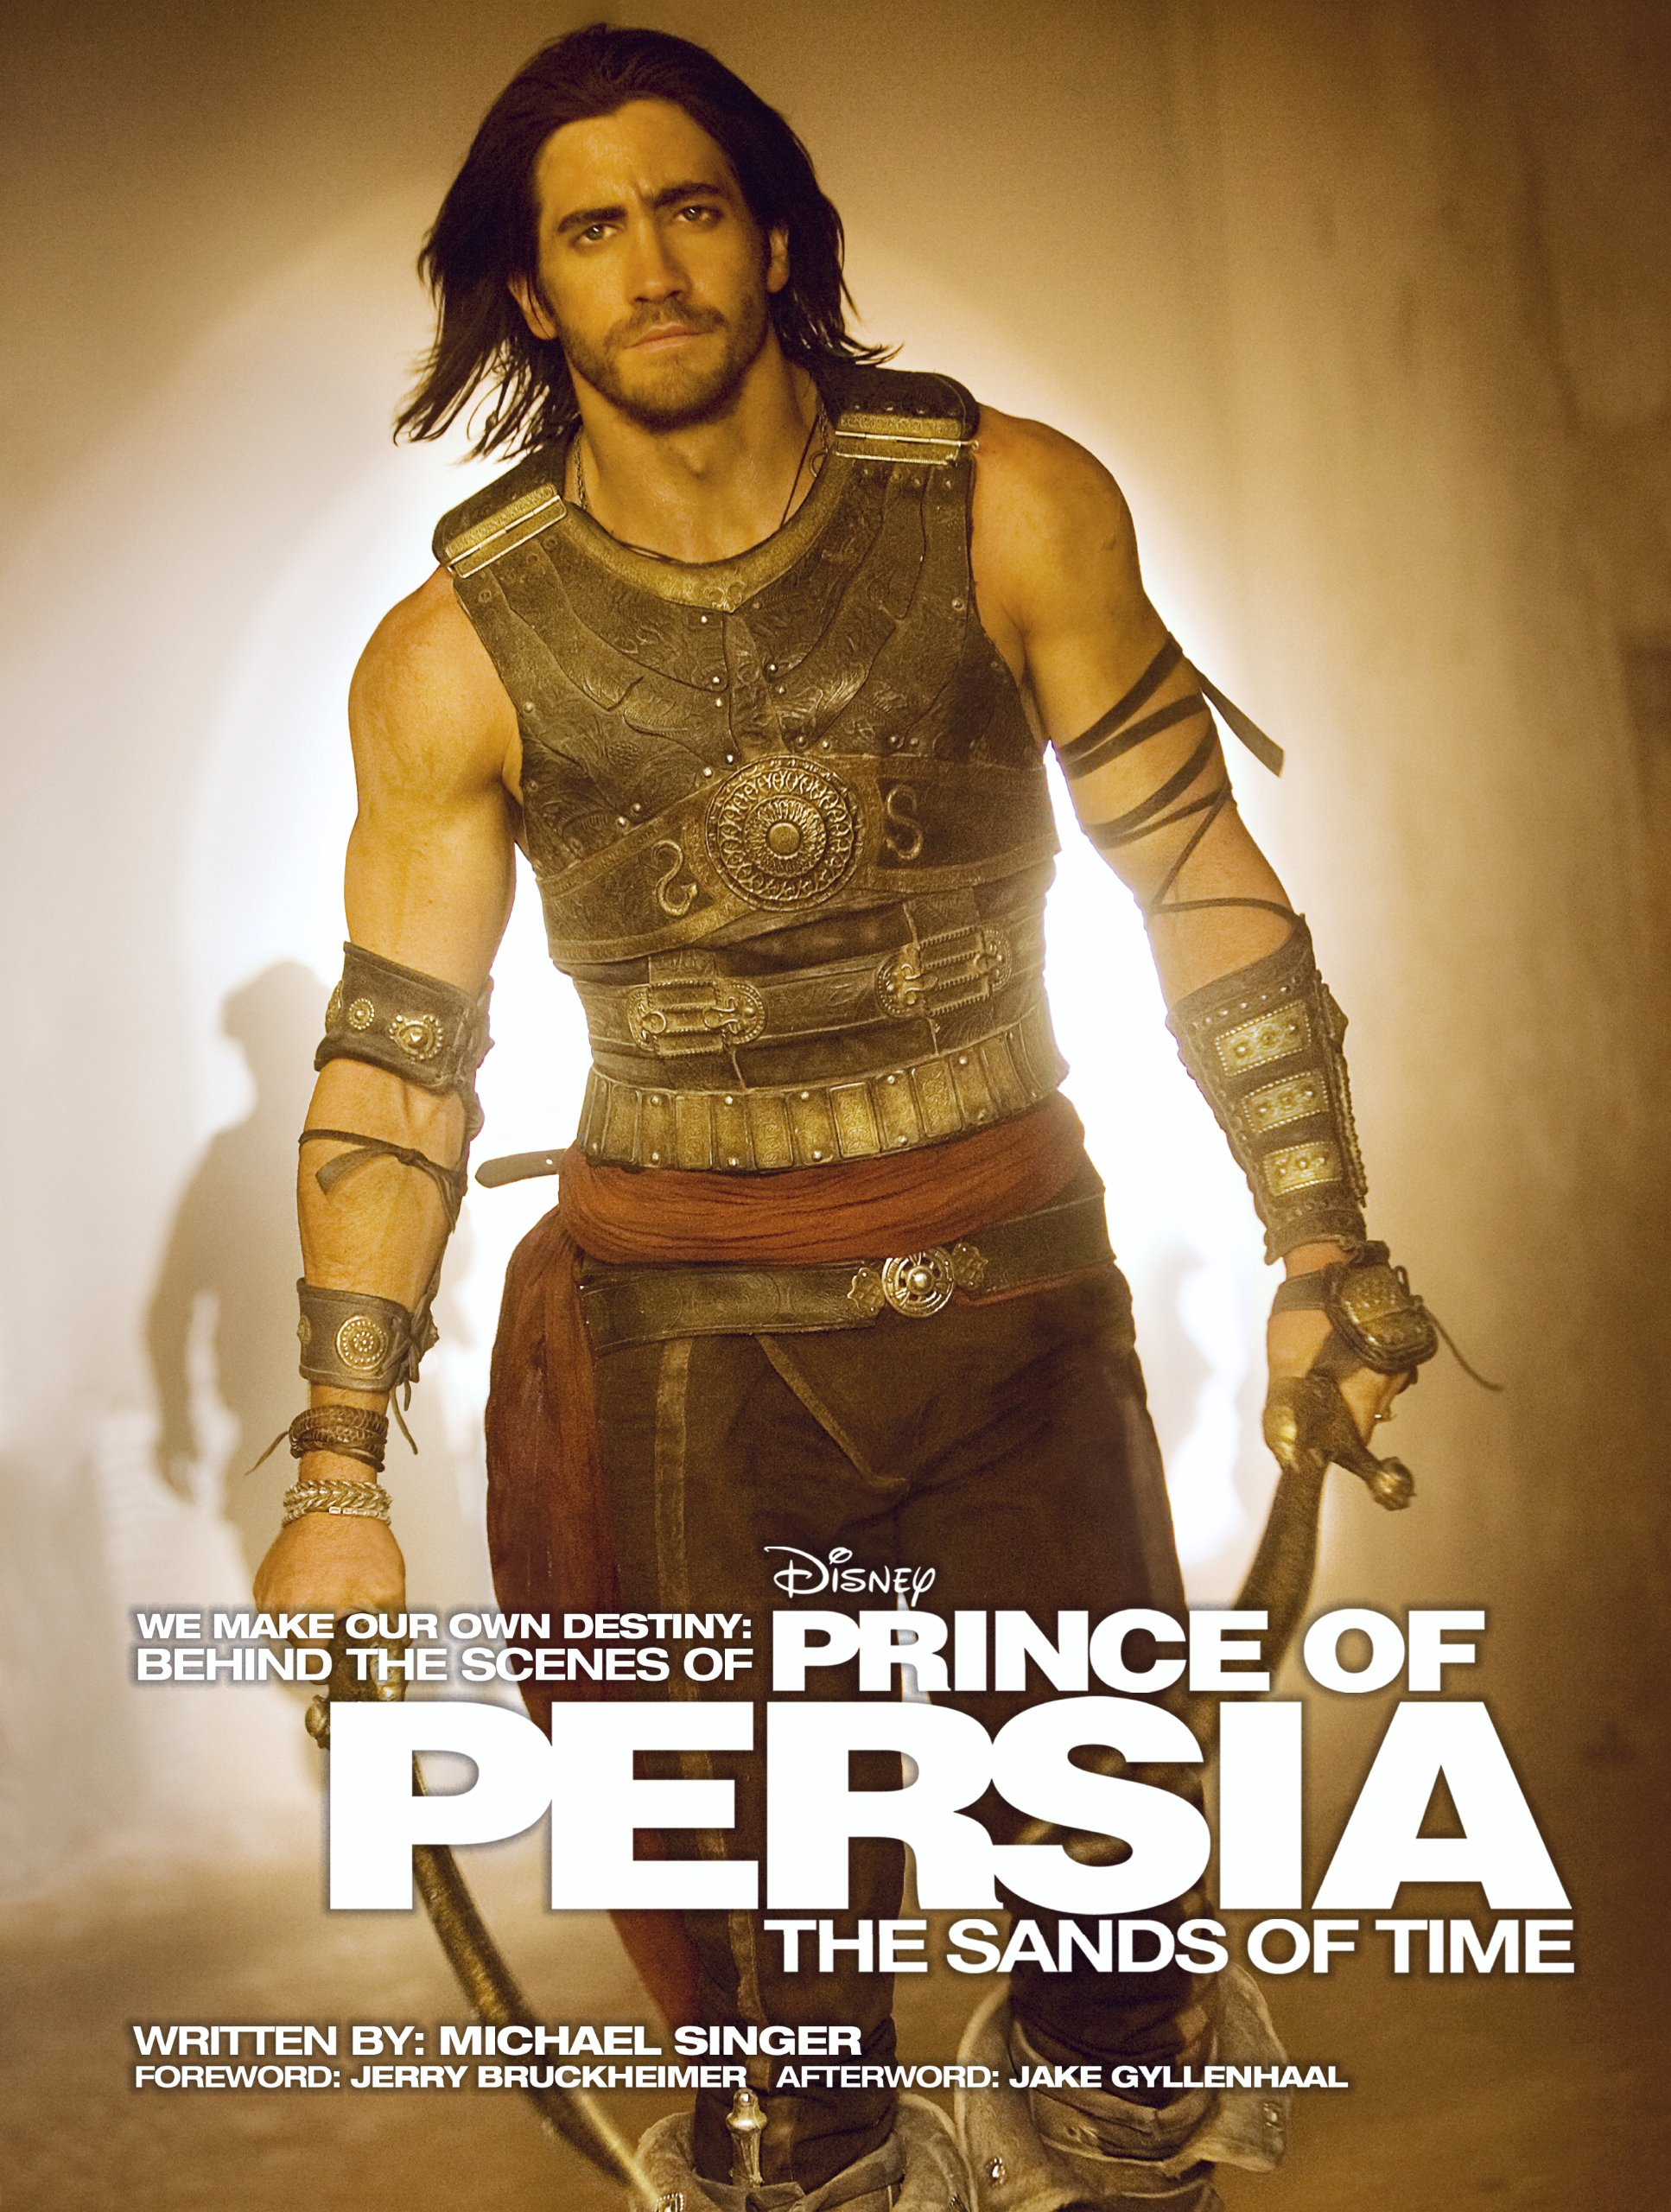 We Make Our Own Destiny Behind The Scenes Of Prince Of Persia The Sands Of Time Foreword Jerry Bruckheimer Afterword Jake Gyllenhaal Welcome Books Disney Editions Singer Michael Amazon Com Books